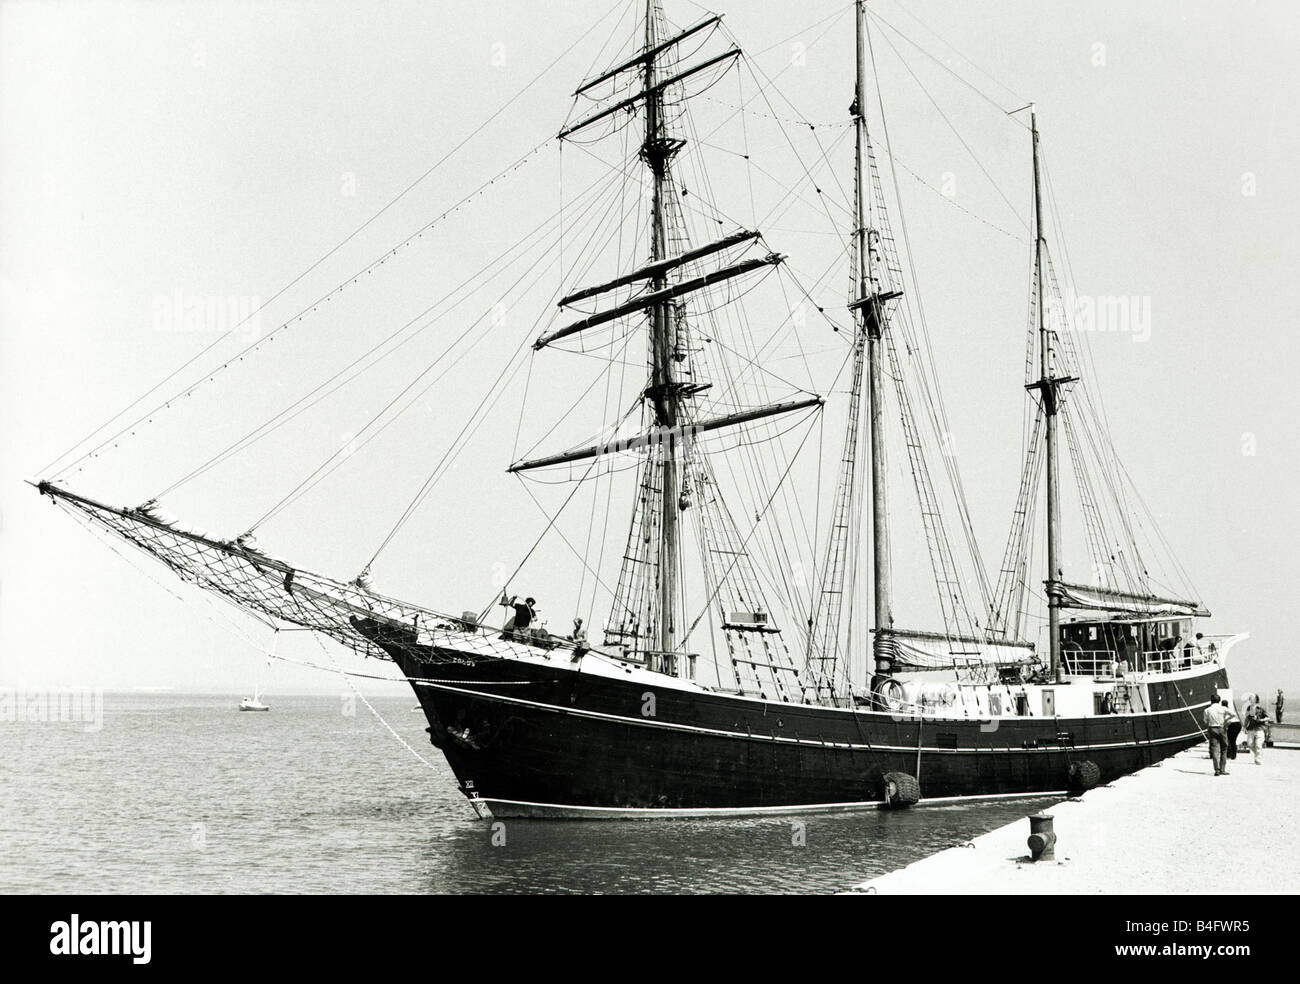 the-sailing-ship-eolus-seen-here-arriving-at-portsmouth-at-the-beginning-b4fwr5.jpg